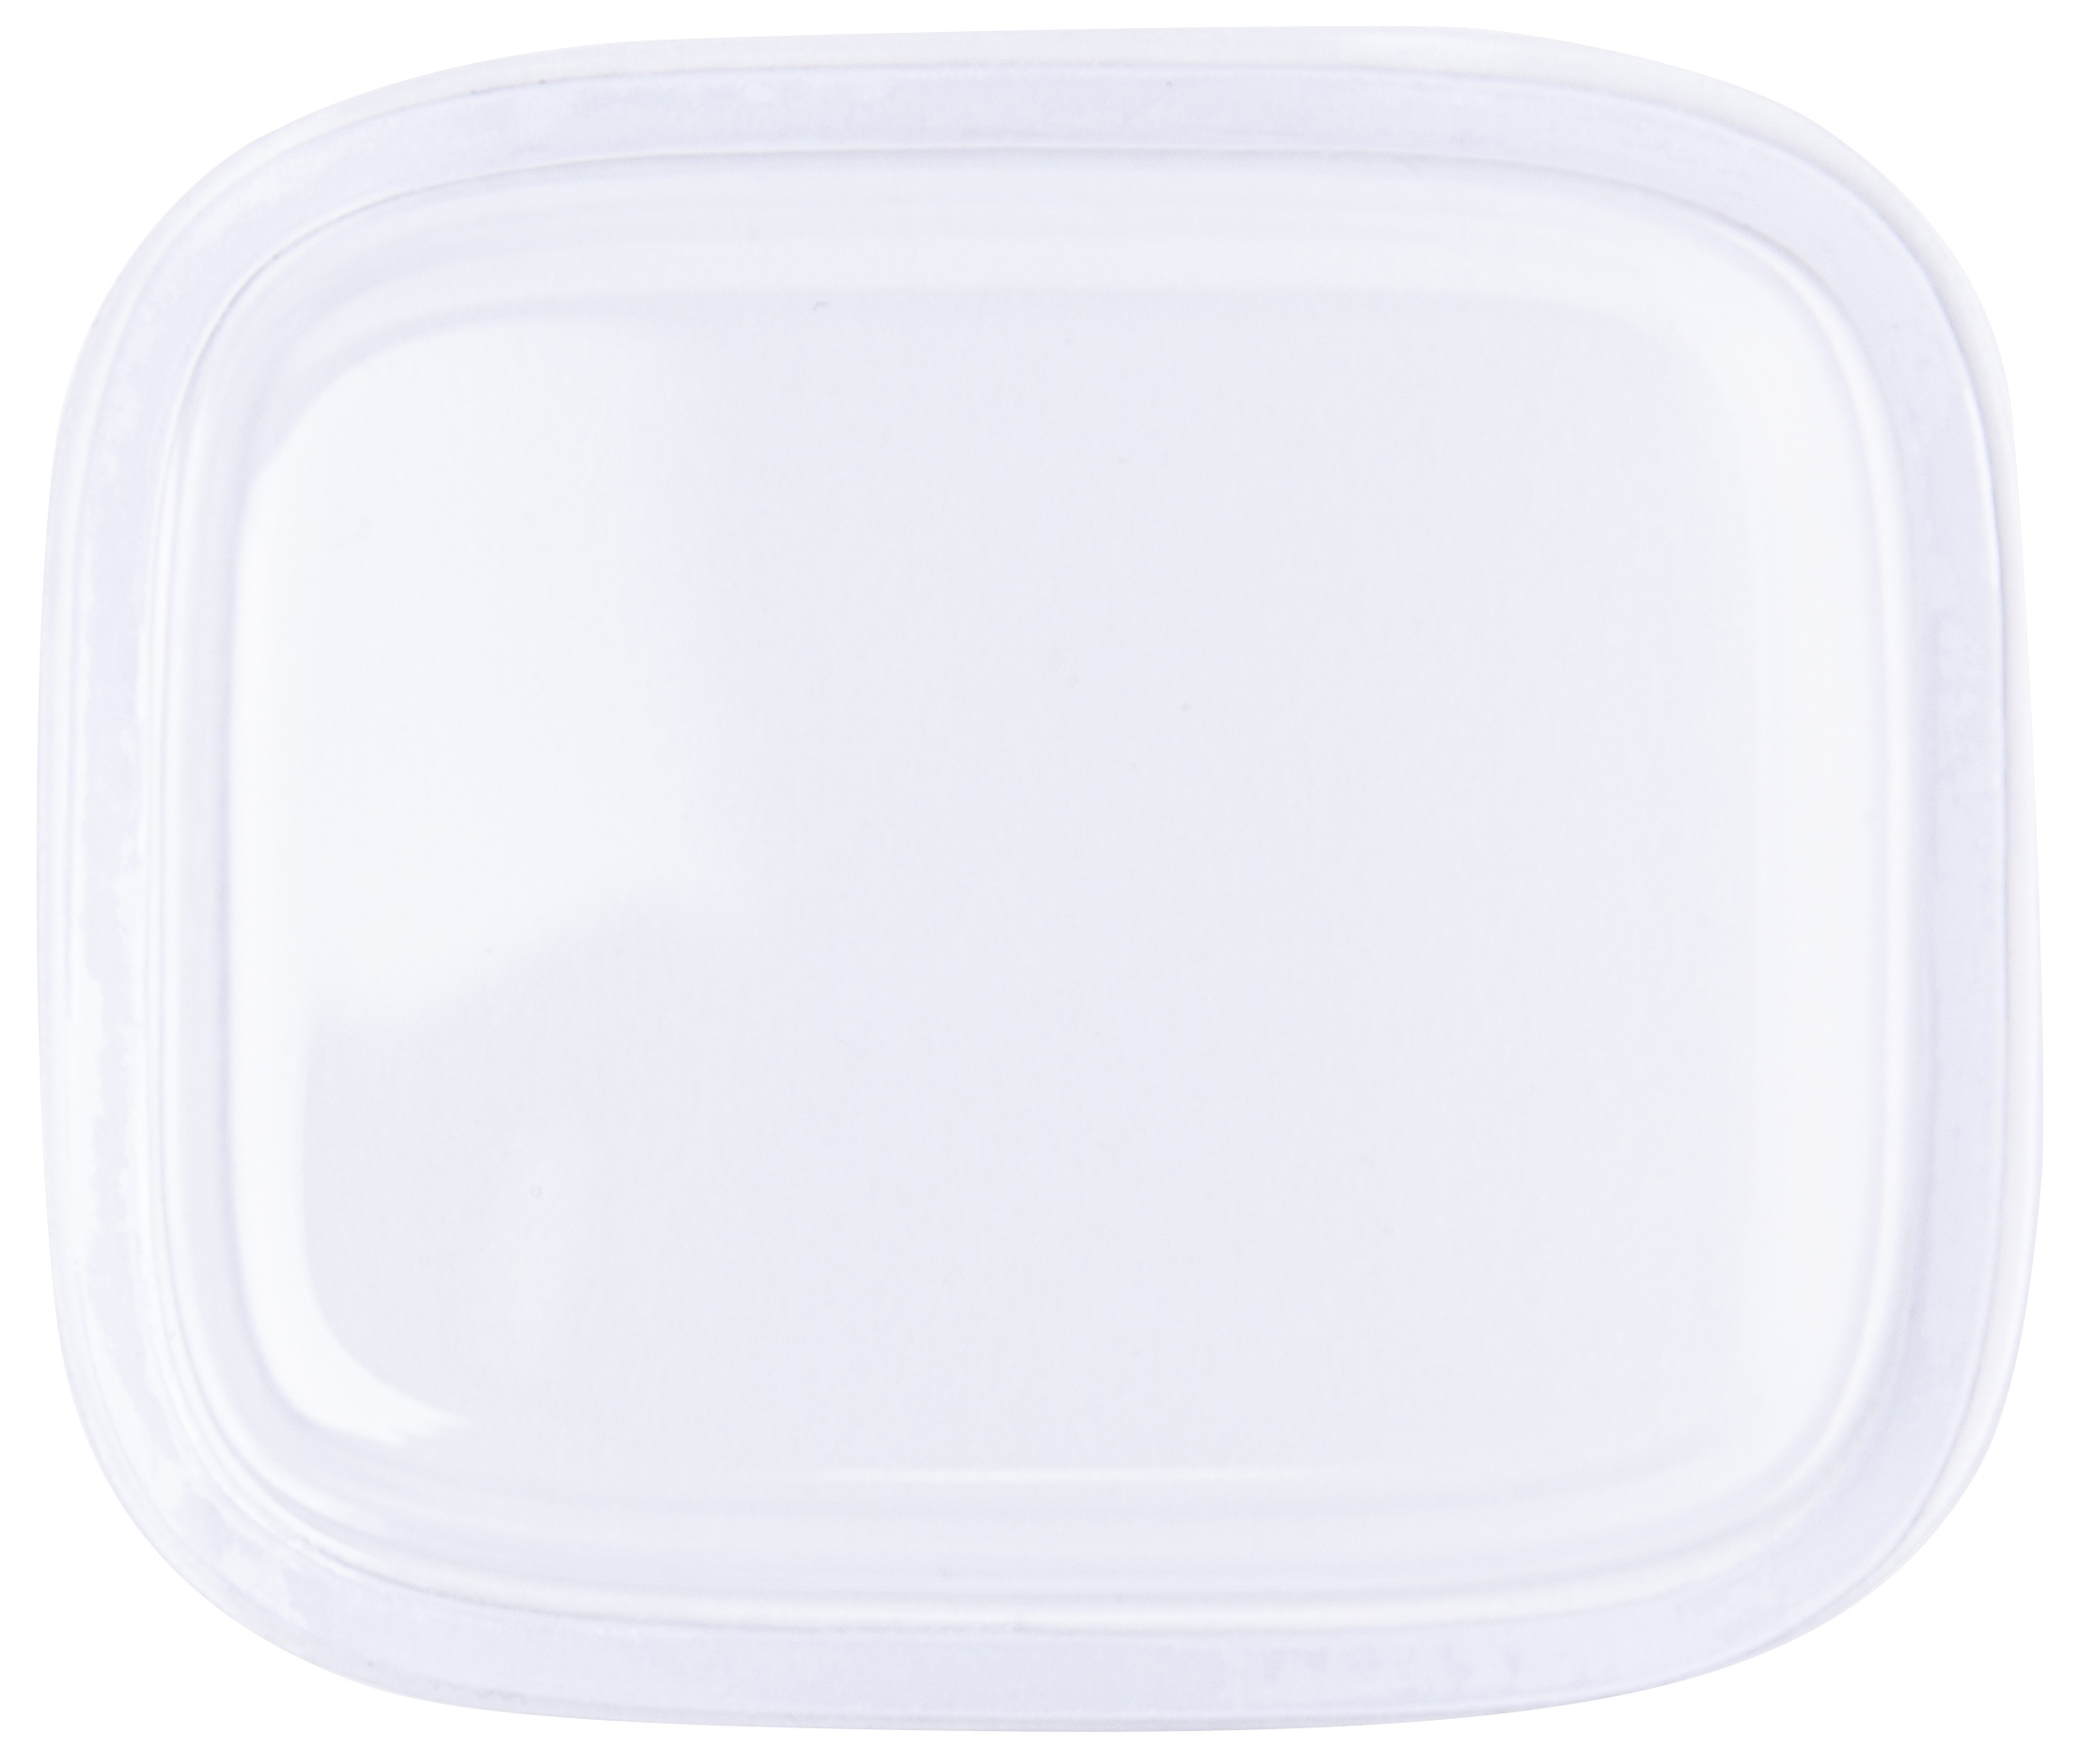 Sizzix Making Essentials Shaker Domes-Rounded Square 2.25, 6/Pkg